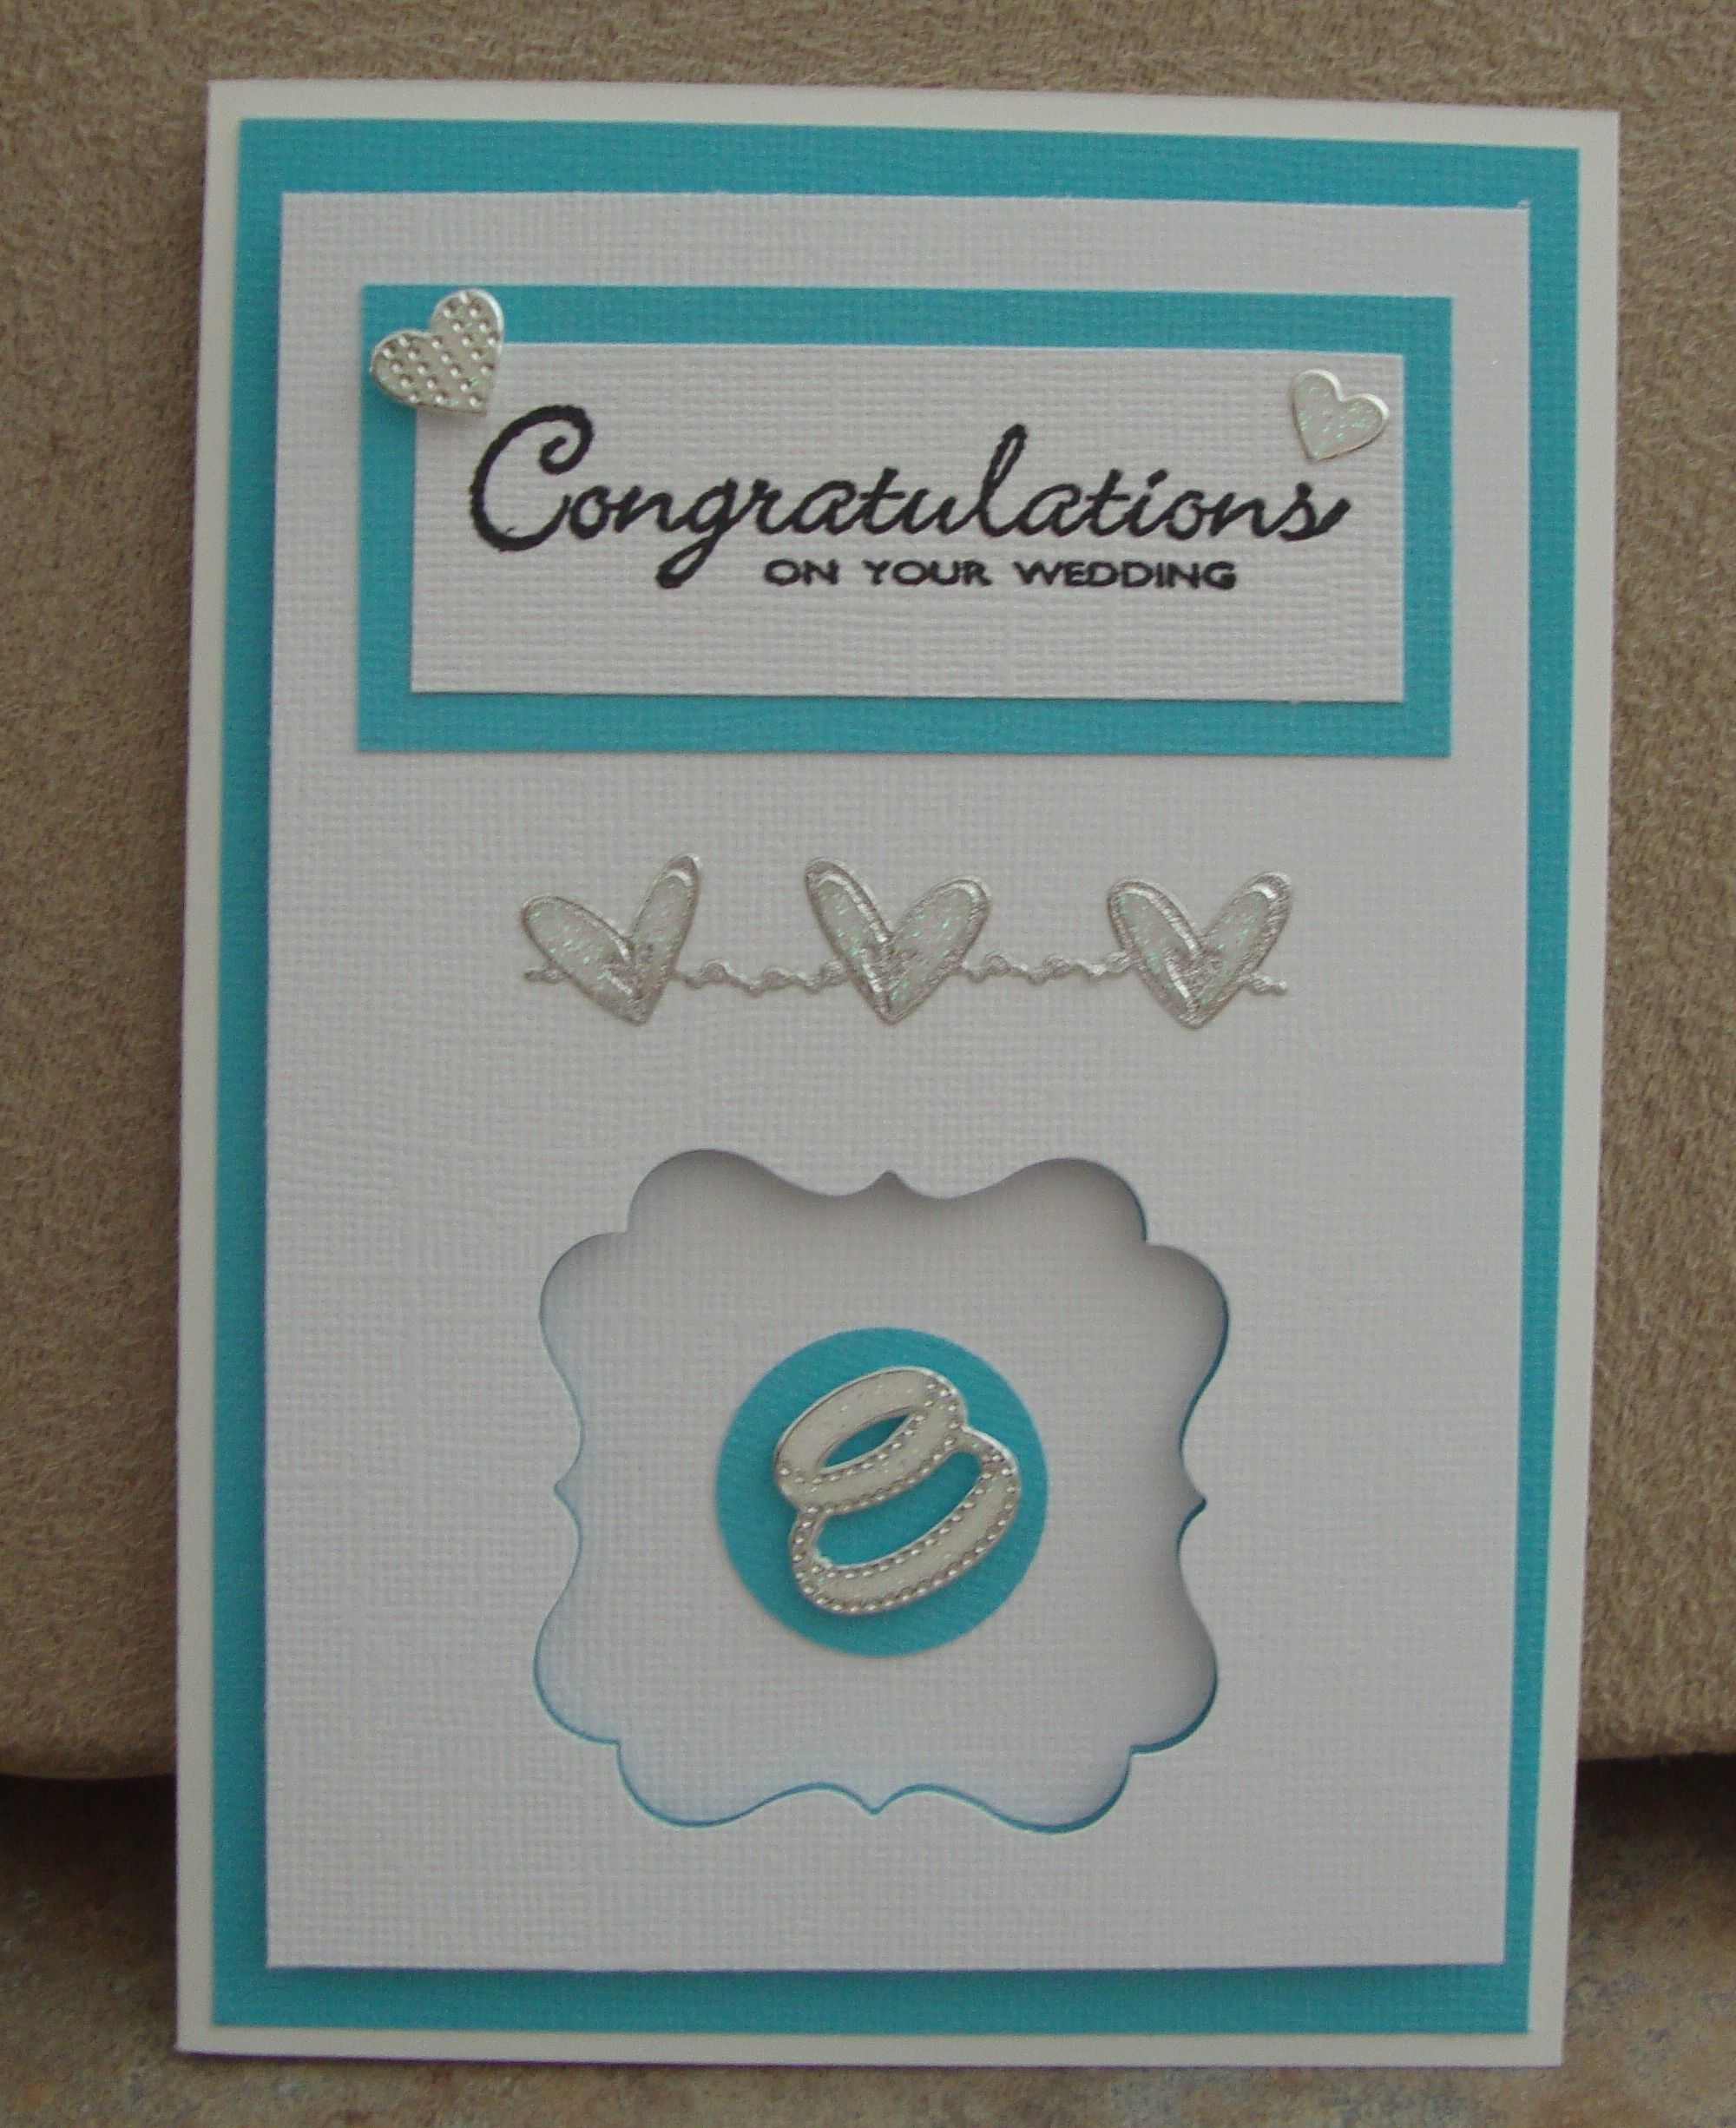 Wedding card | Homemade cards by Janie Cox | Pinterest